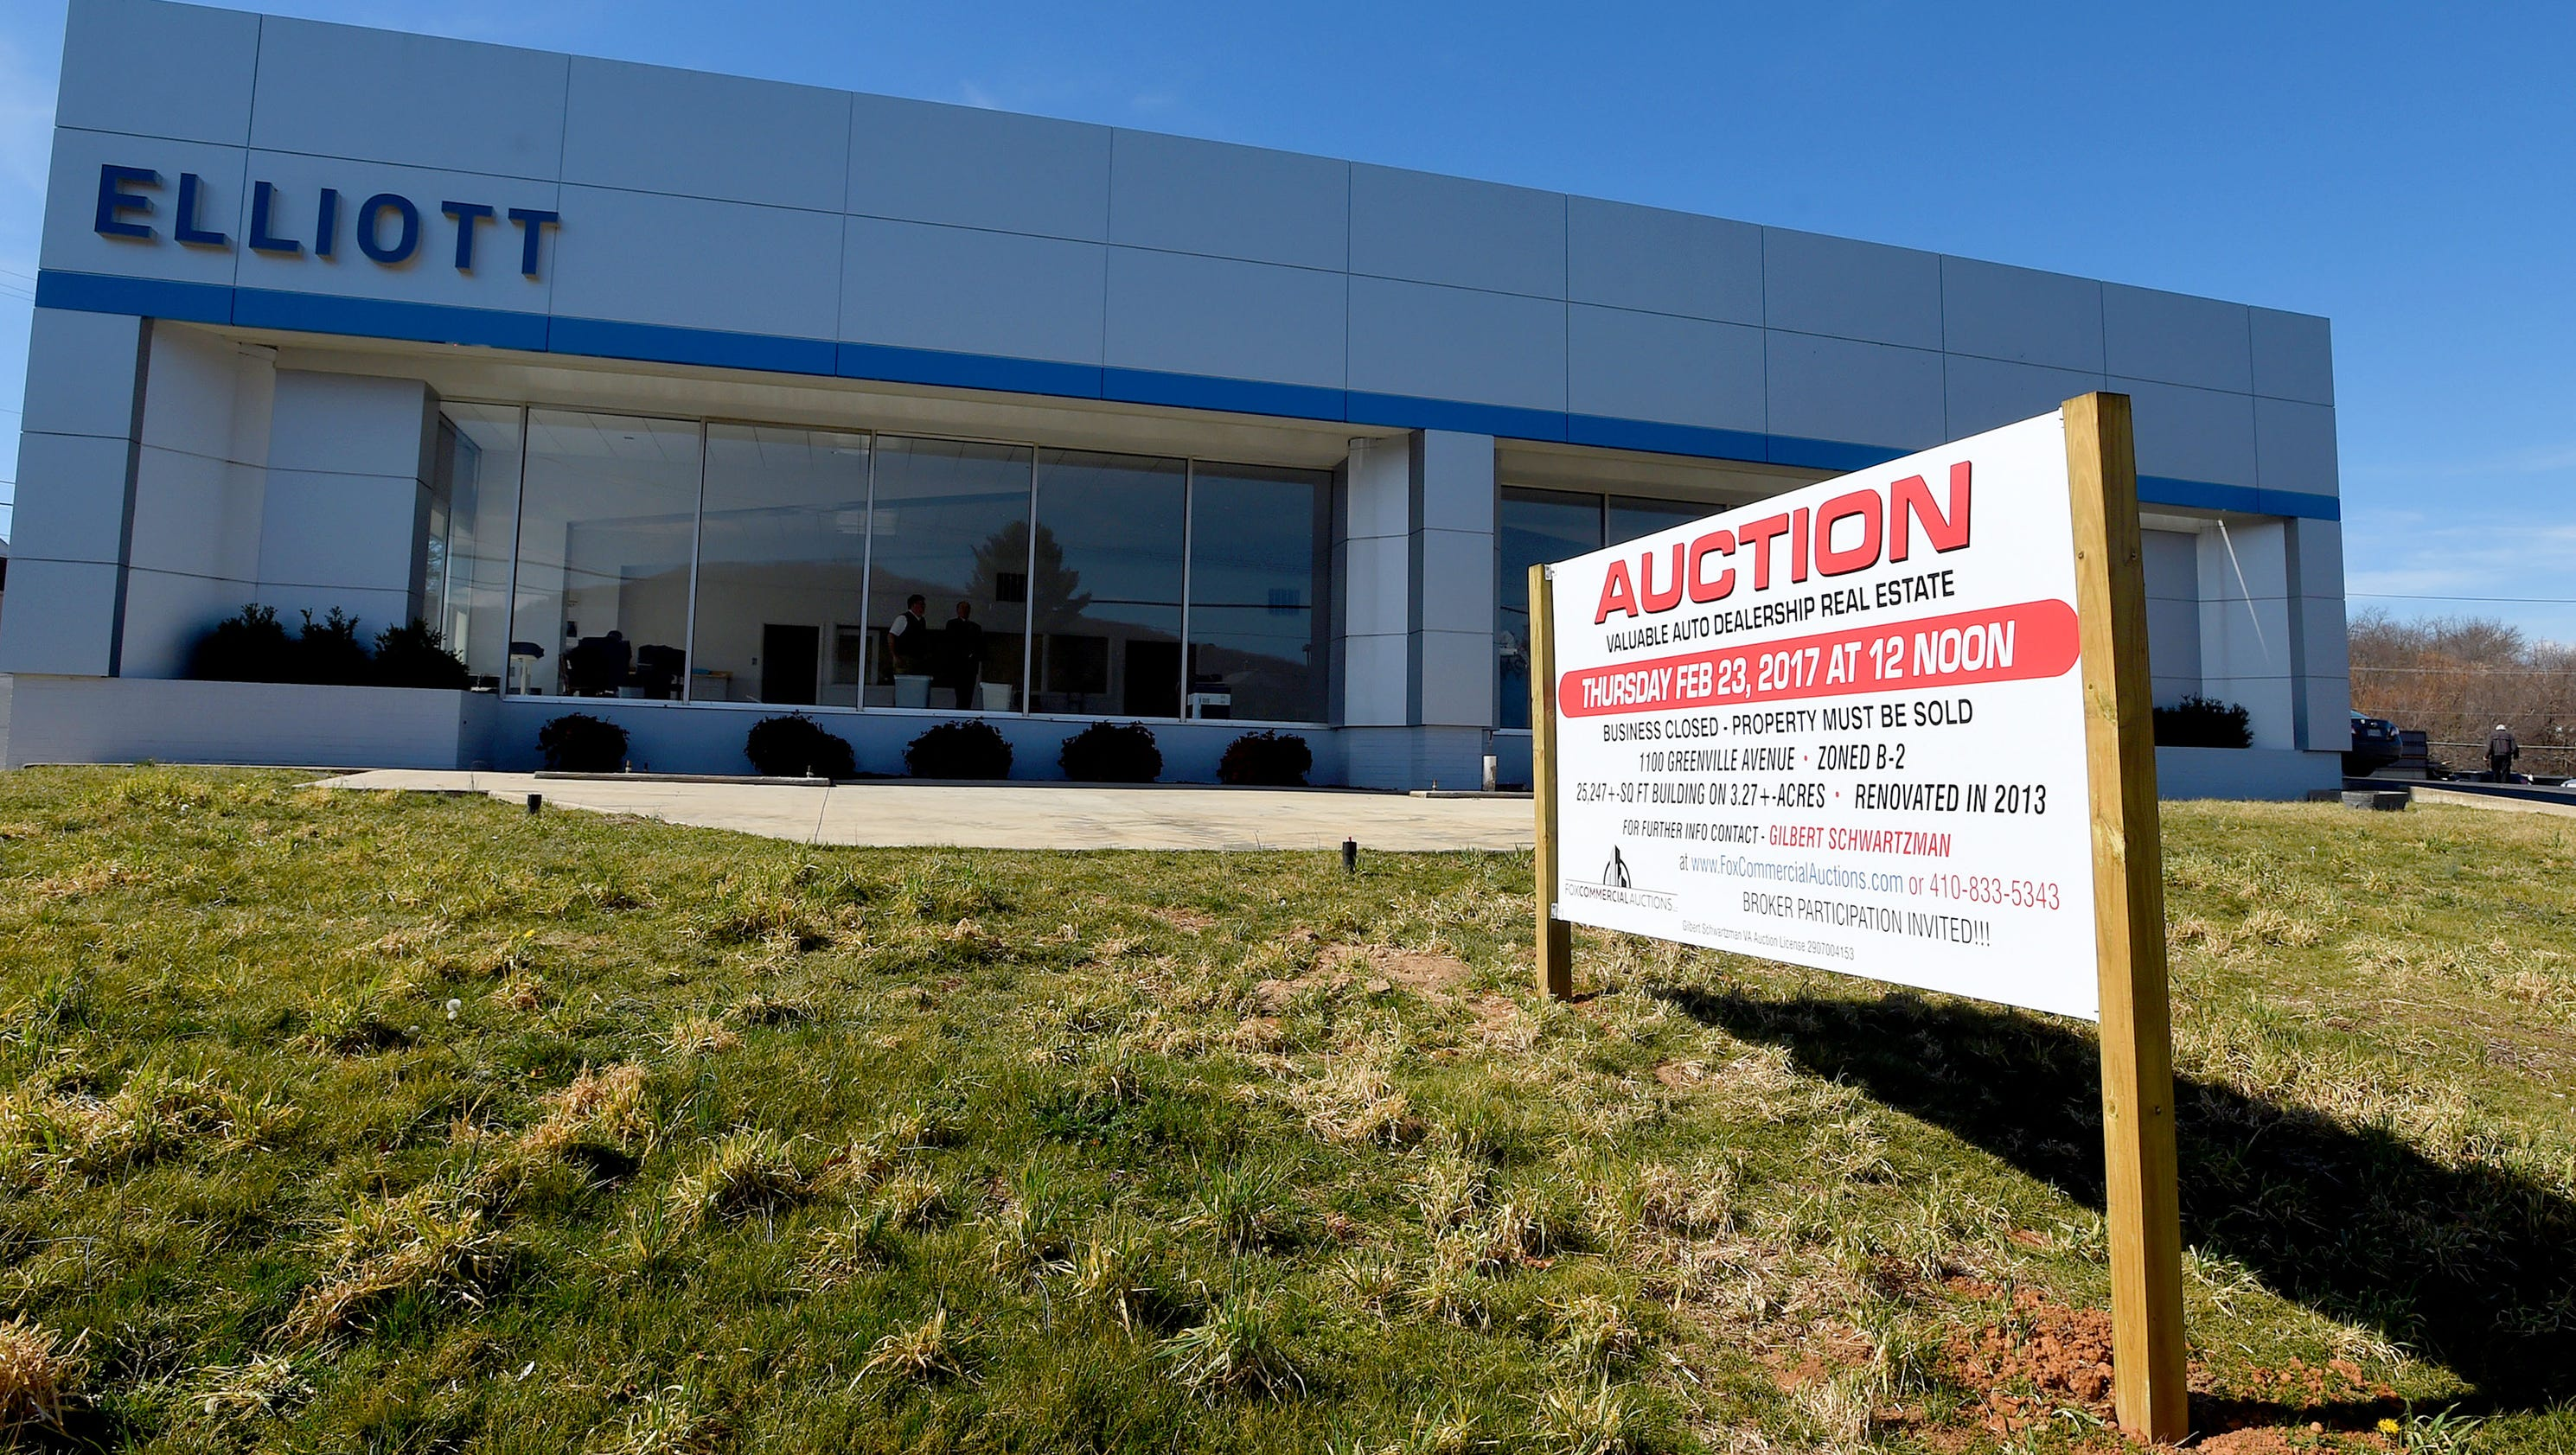 Reading Auction Property For Sale